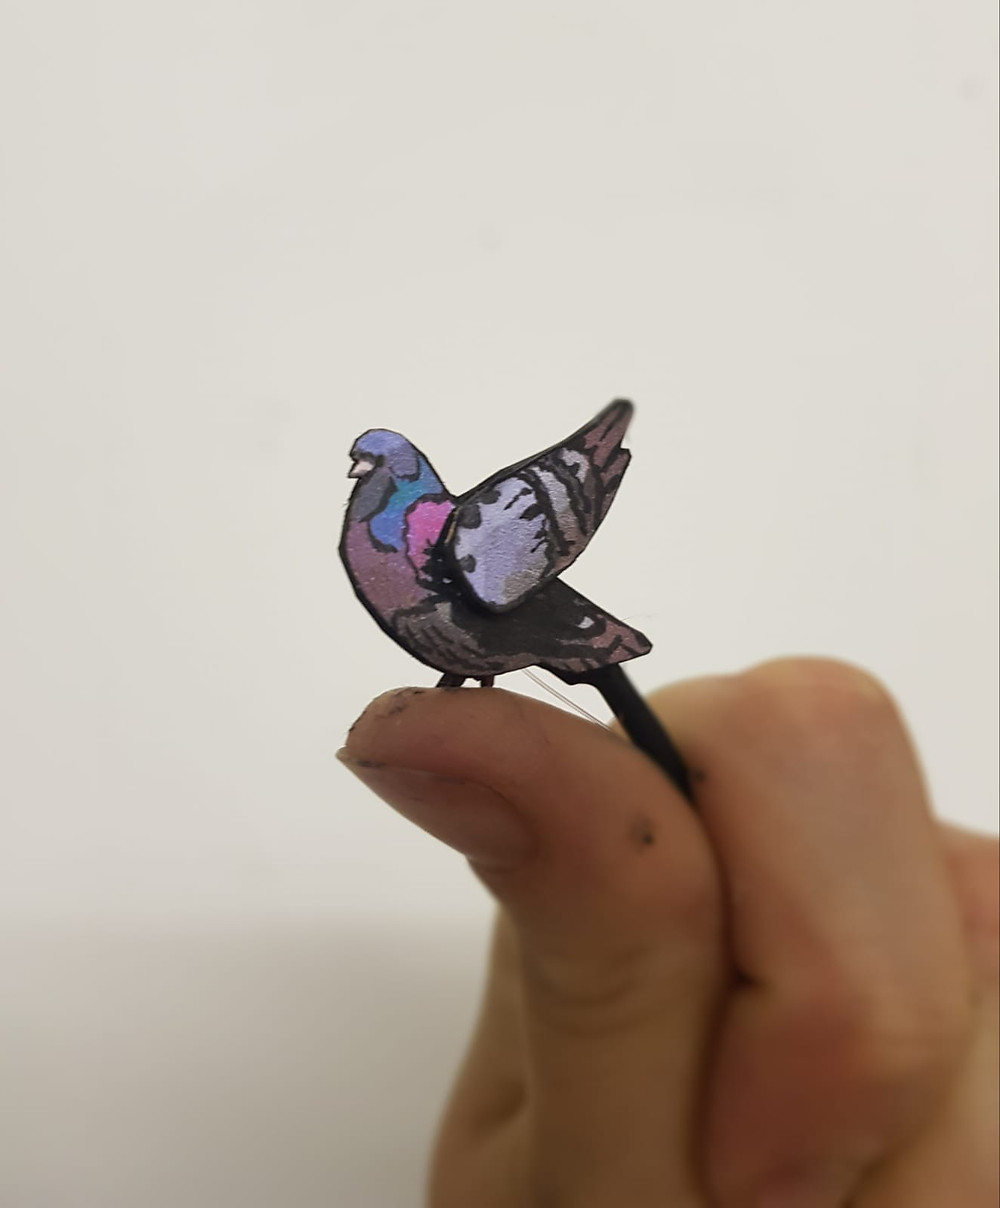 A tiny 2cm pigeon puppet with moving wings is held between a puppeteer's fingertips. The pigeons is grey with blue and pink highlights and it's wing points into the air.